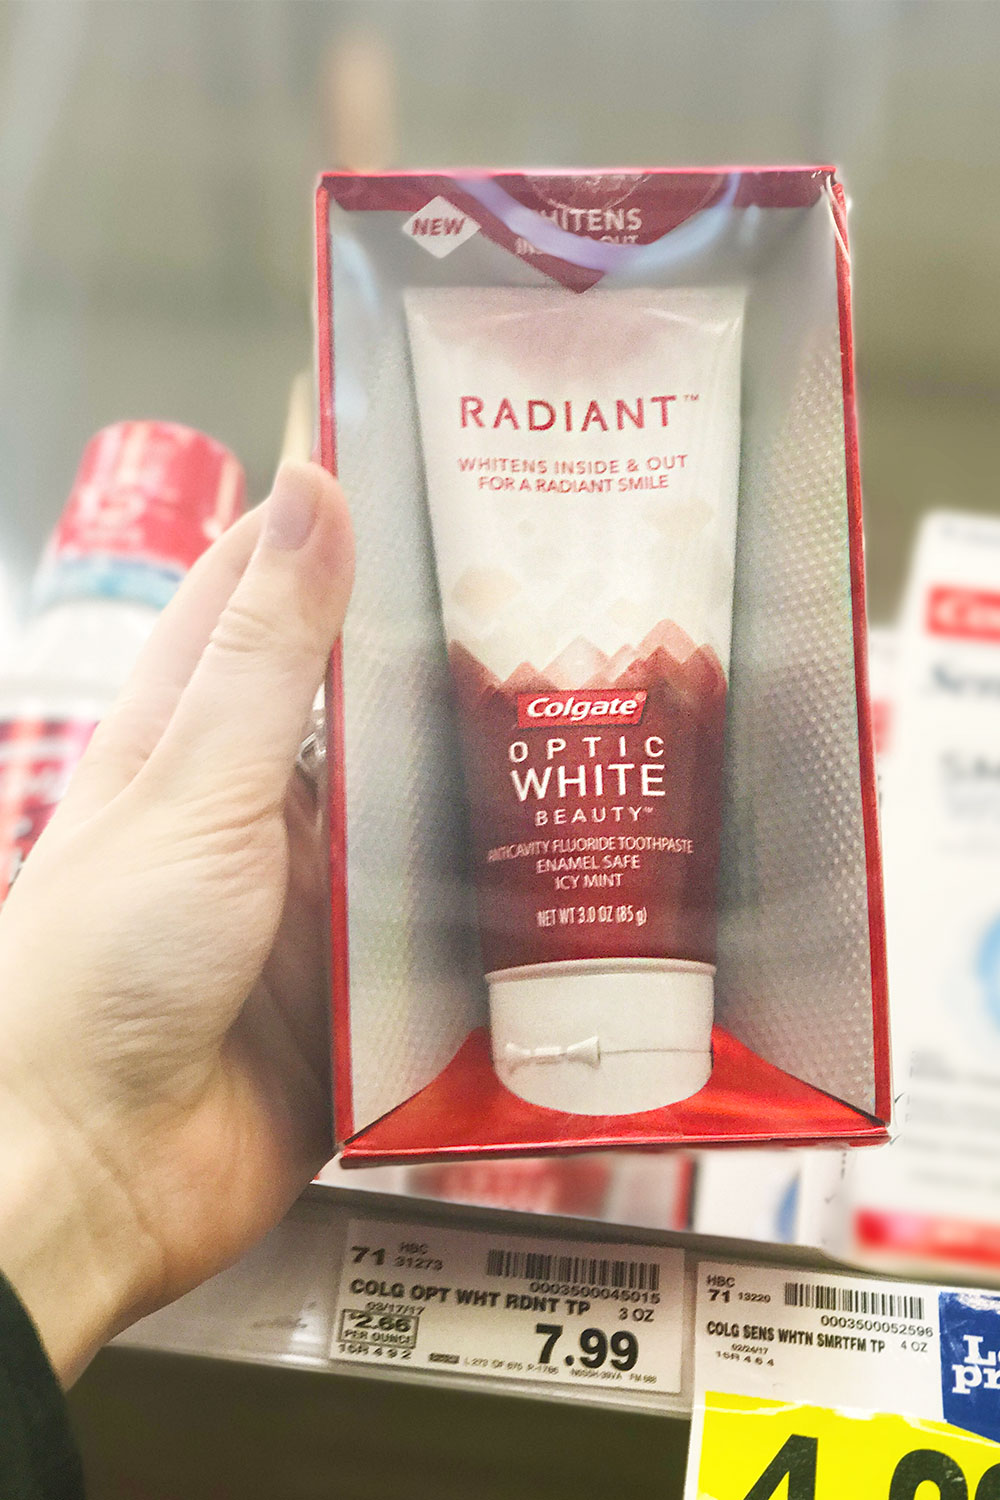 Colgate Optic White Radiant Toothpaste at Kroger // Hello Rigby Seattle Beauty Blog